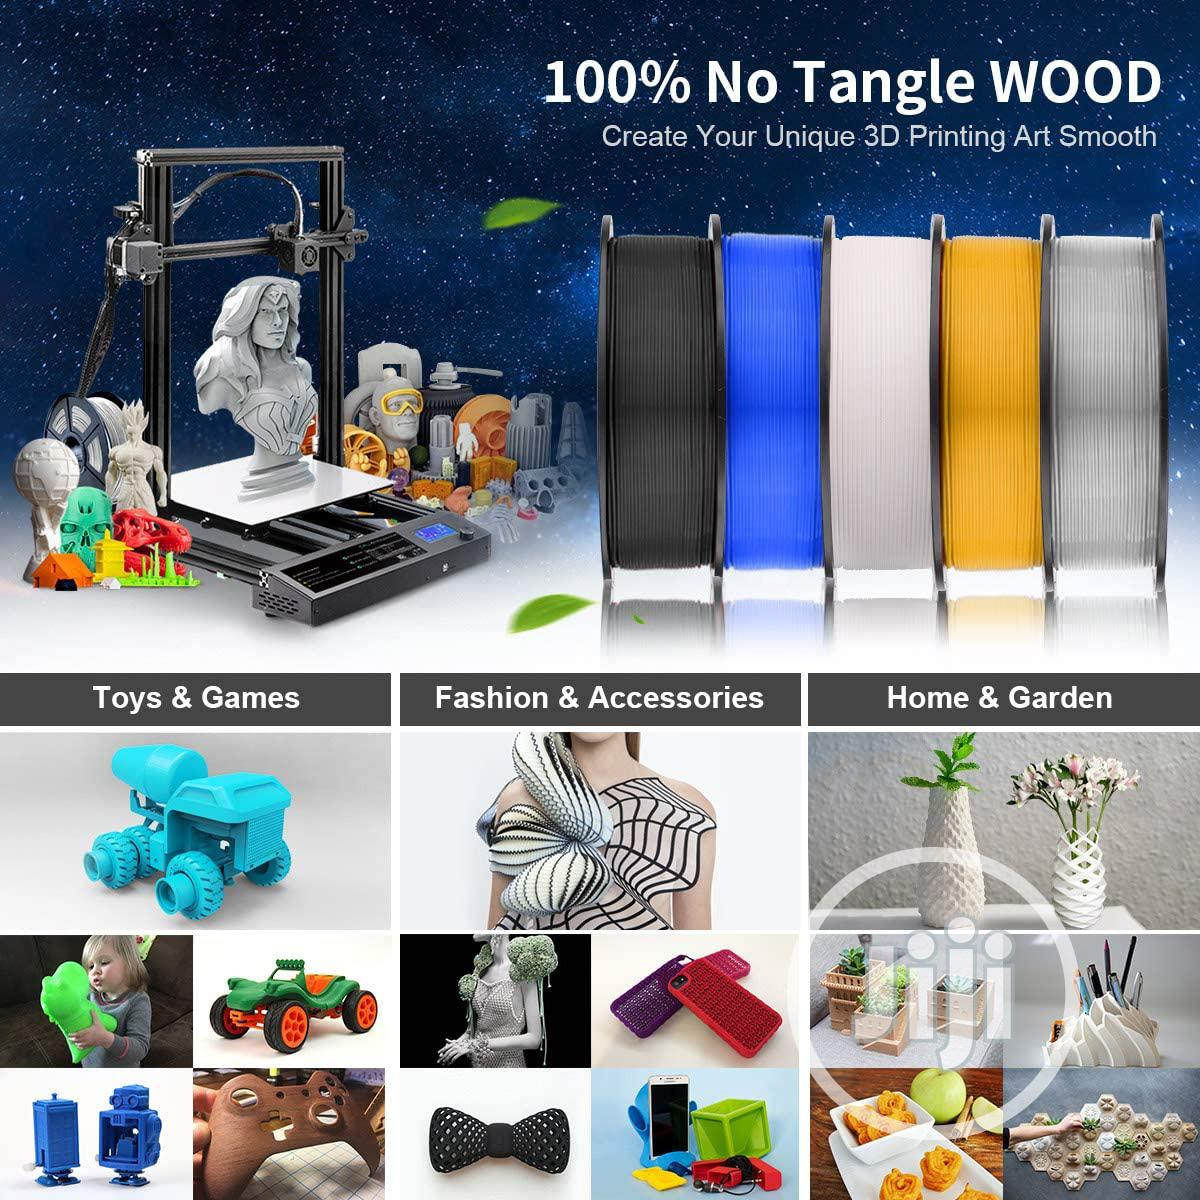 USA SUNLU Wood 3D Printer Filament 1.75mm PLA Filament 1kg/Spool | Printing Equipment for sale in Alimosho, Lagos State, Nigeria